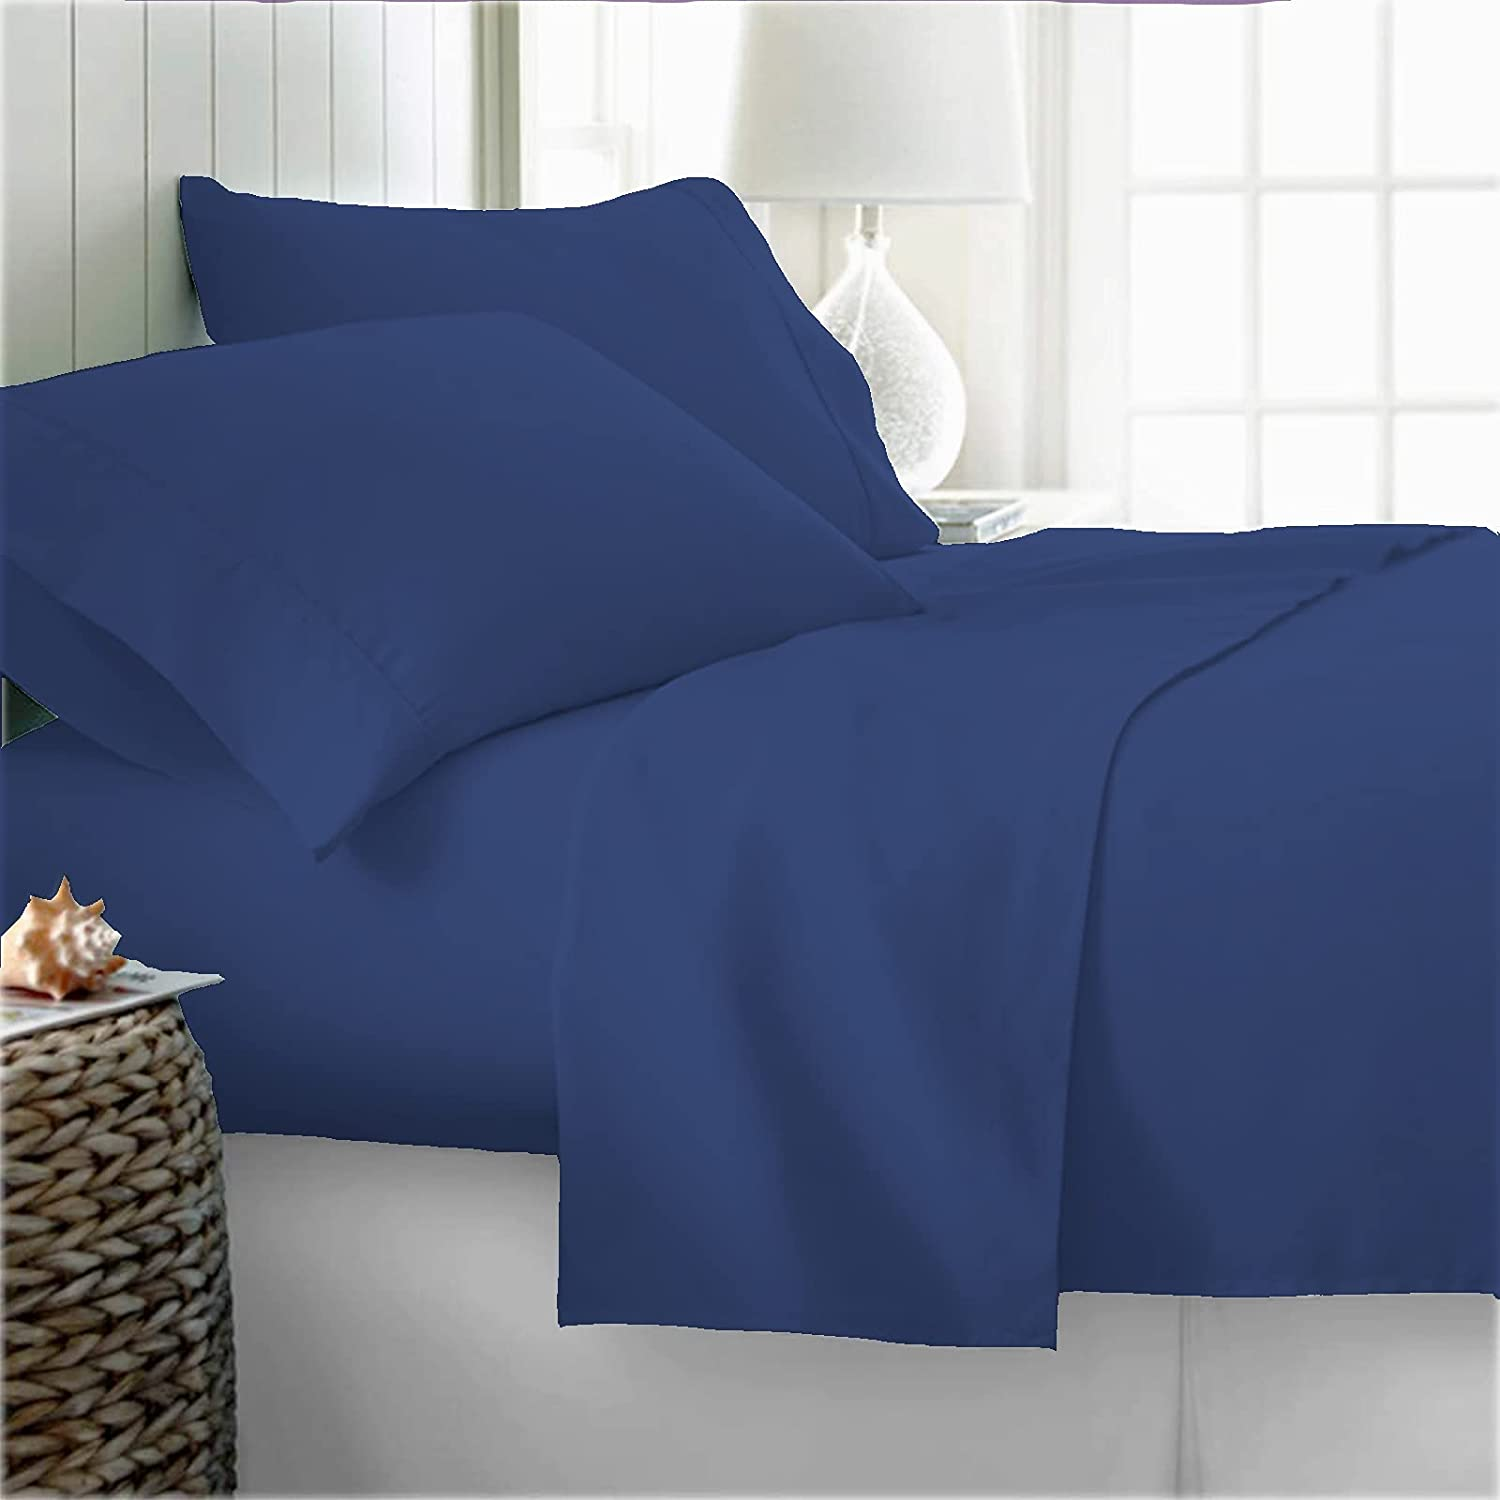 100% Organic Cotton Bed Sheets Twin Sheet Dark XL Bombing free shipping - Blue Discount is also underway